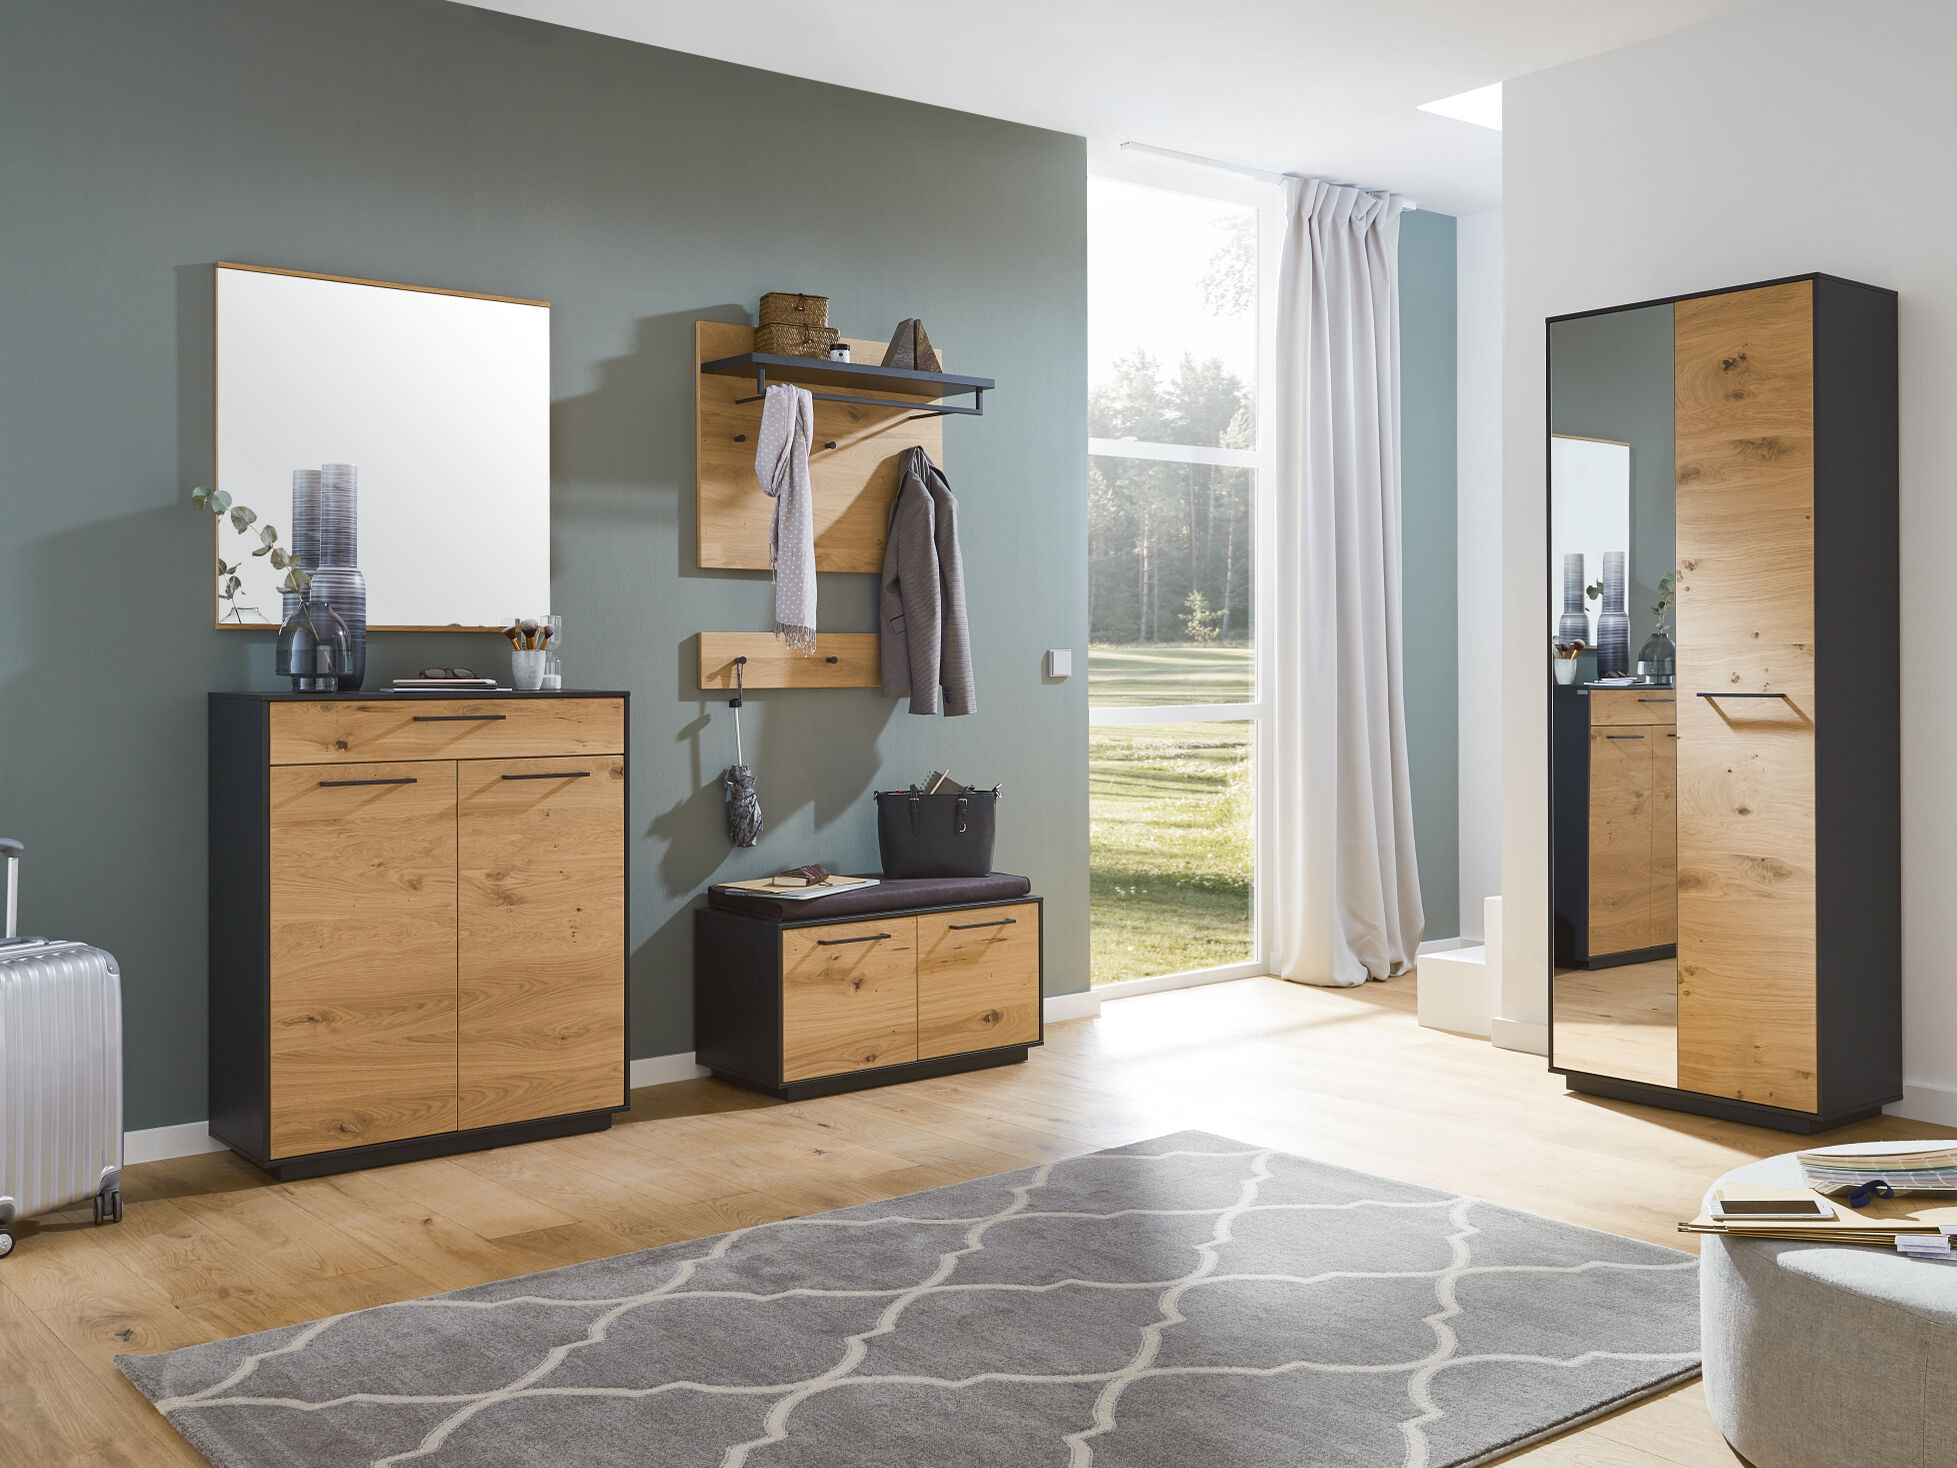 dieter knoll de markenwebsite. Black Bedroom Furniture Sets. Home Design Ideas